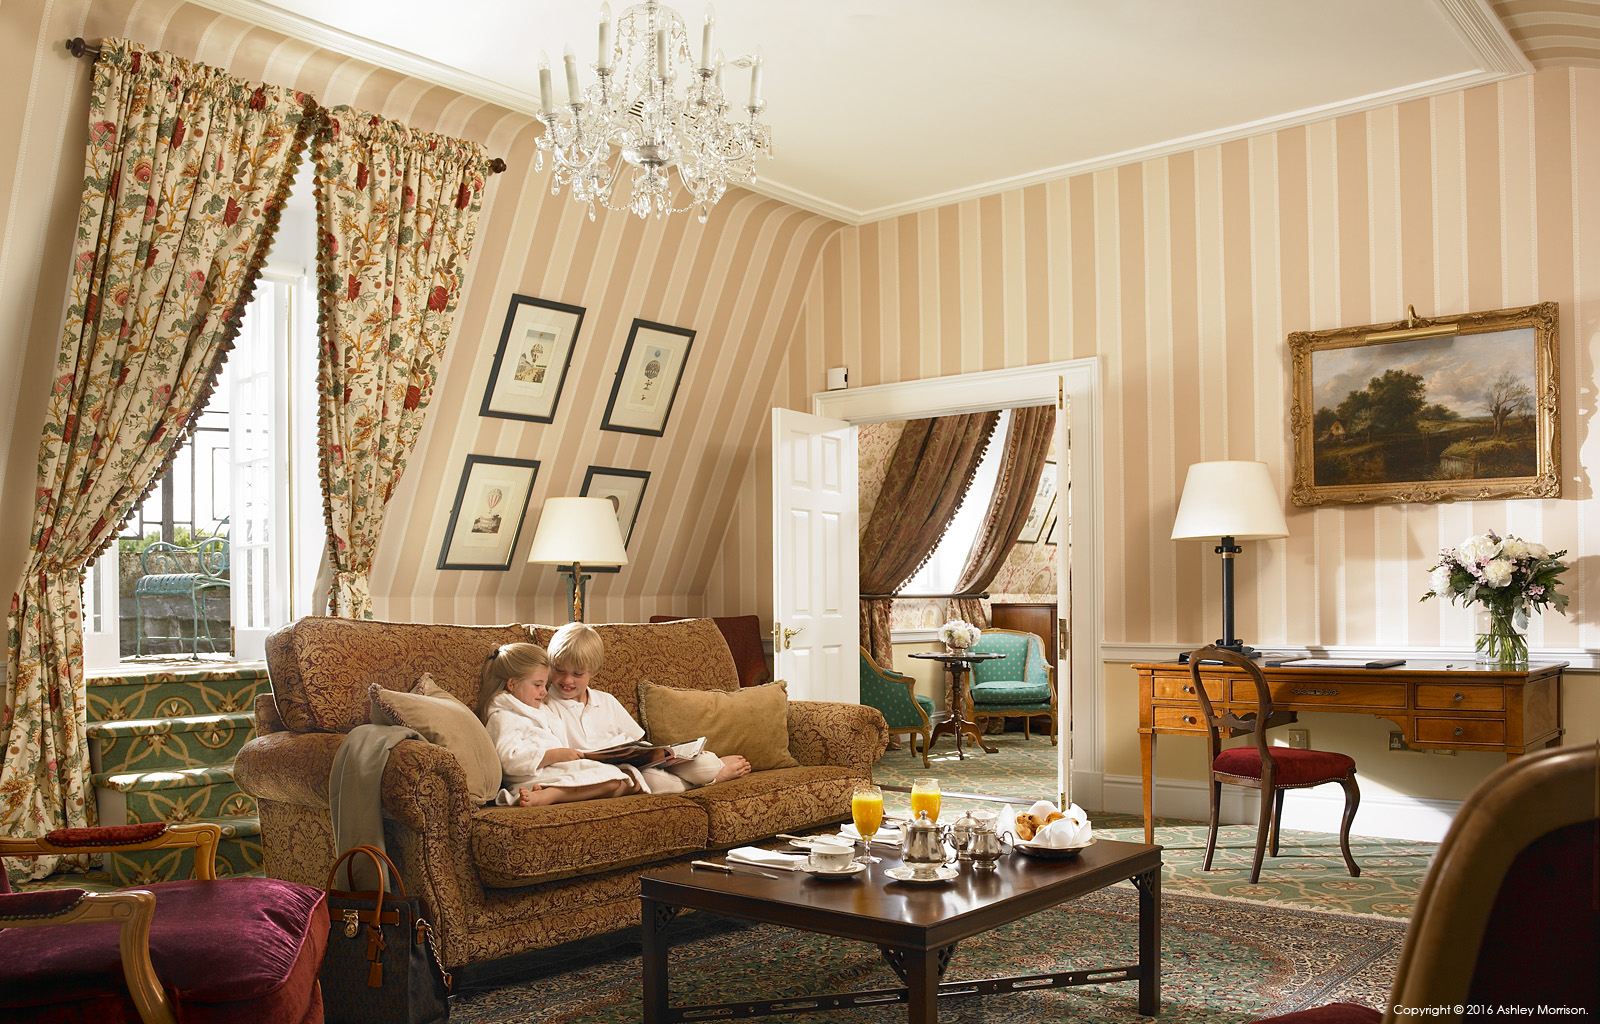 The living room in the Presidential suite at the Kildare Hotel Spa & Golf Club near Straffan in County Kildare.